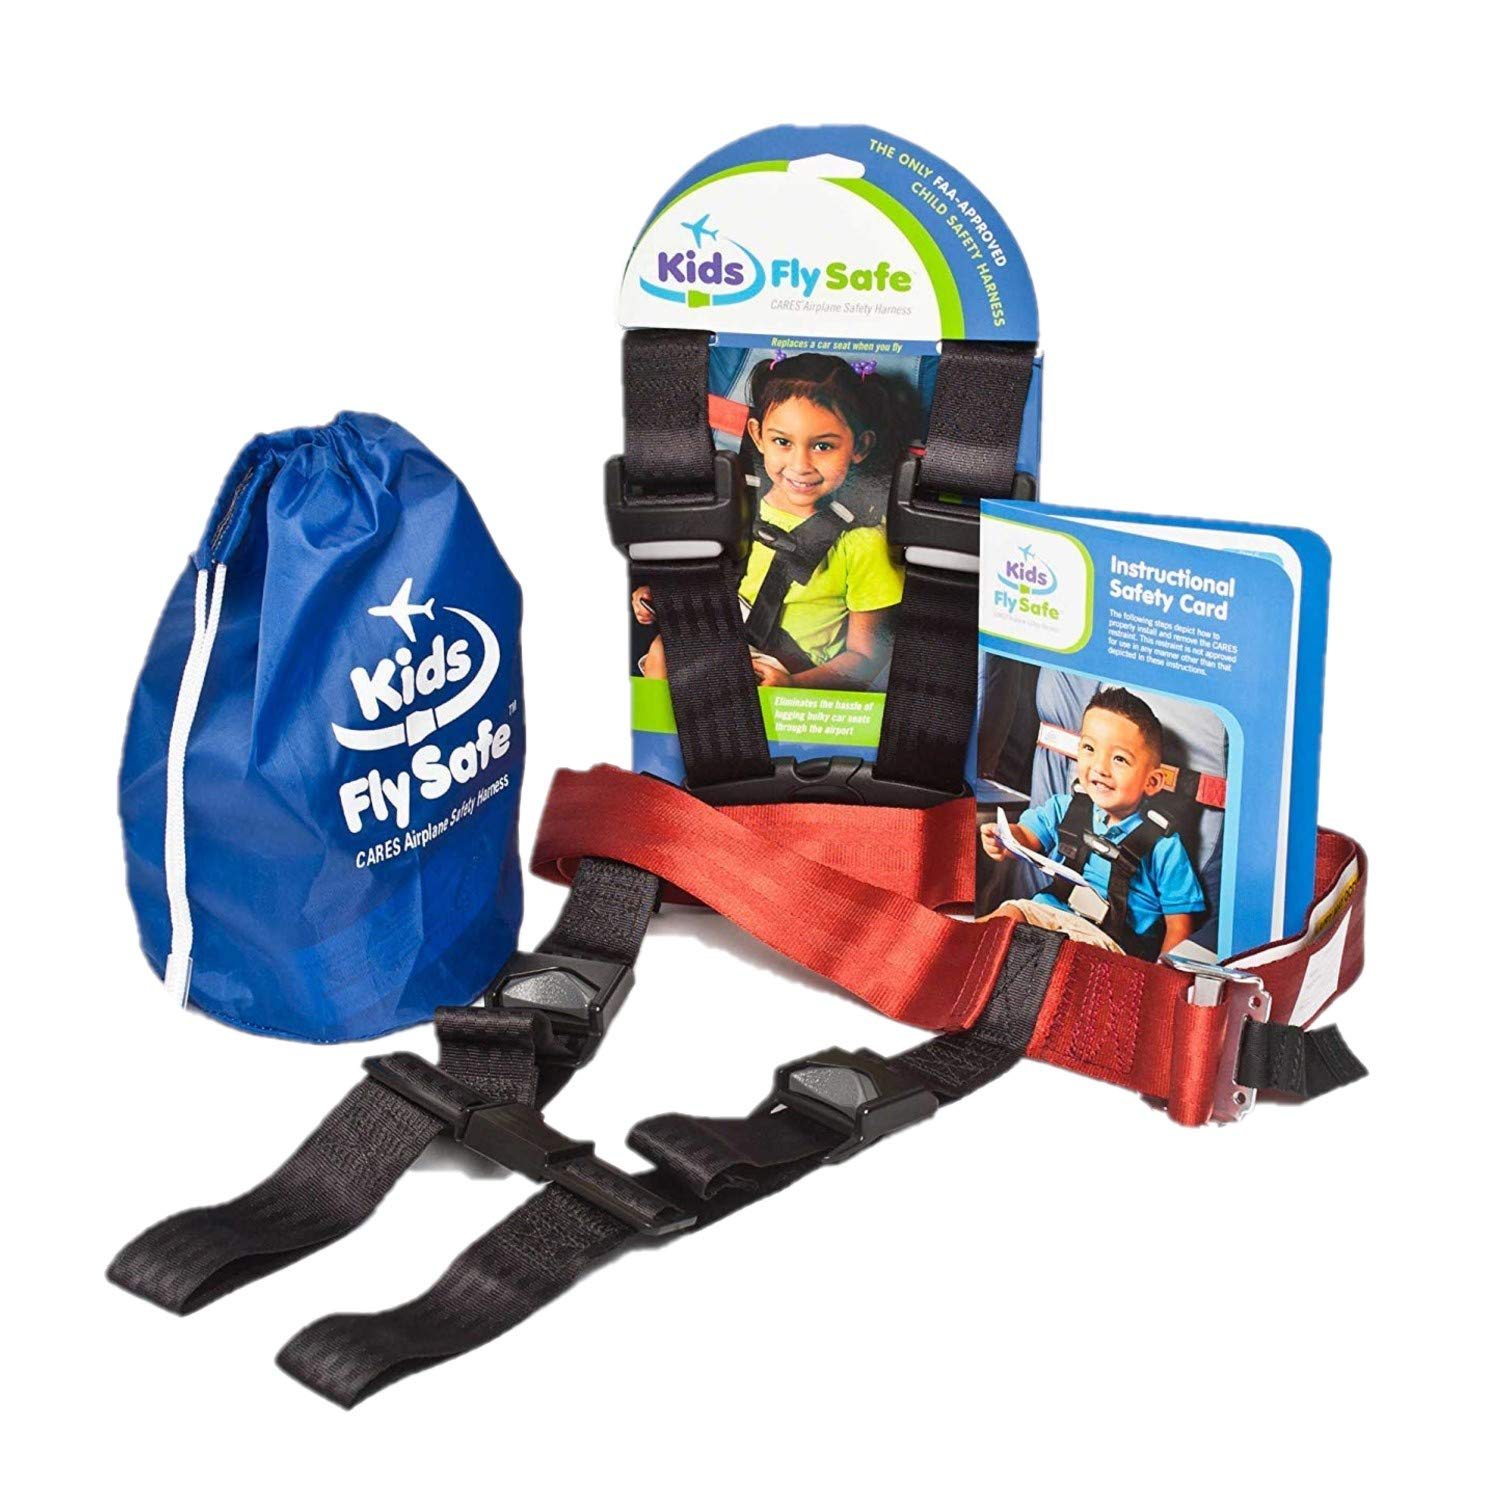 Child Airplane Travel Harness - Cares Safety Restraint System - The Only FAA Approved Child Flying Safety Device